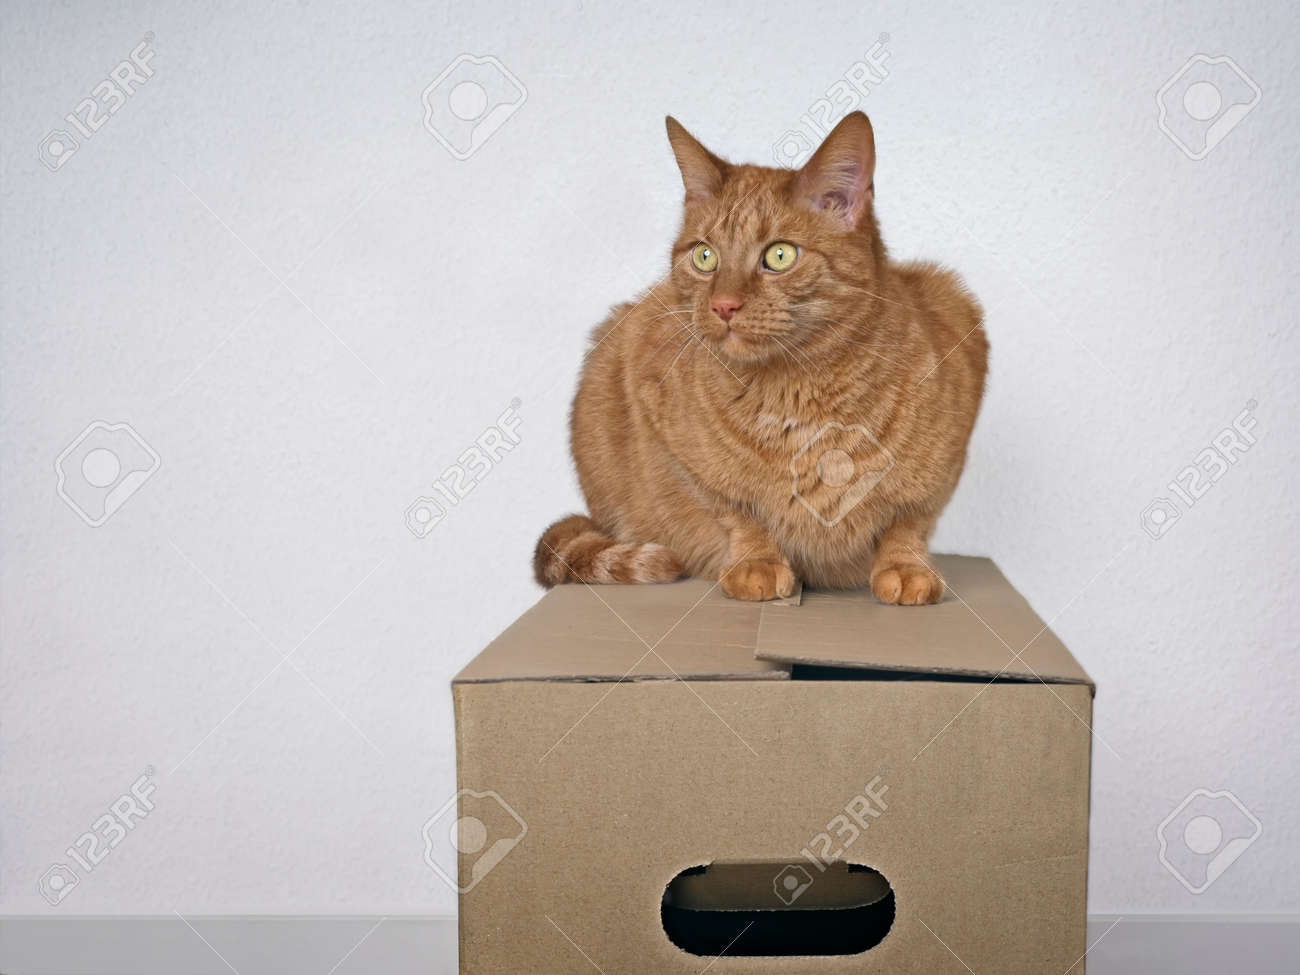 Moving with pets - Ginger cat sitting on a cardboard box and looking away. - 166979827